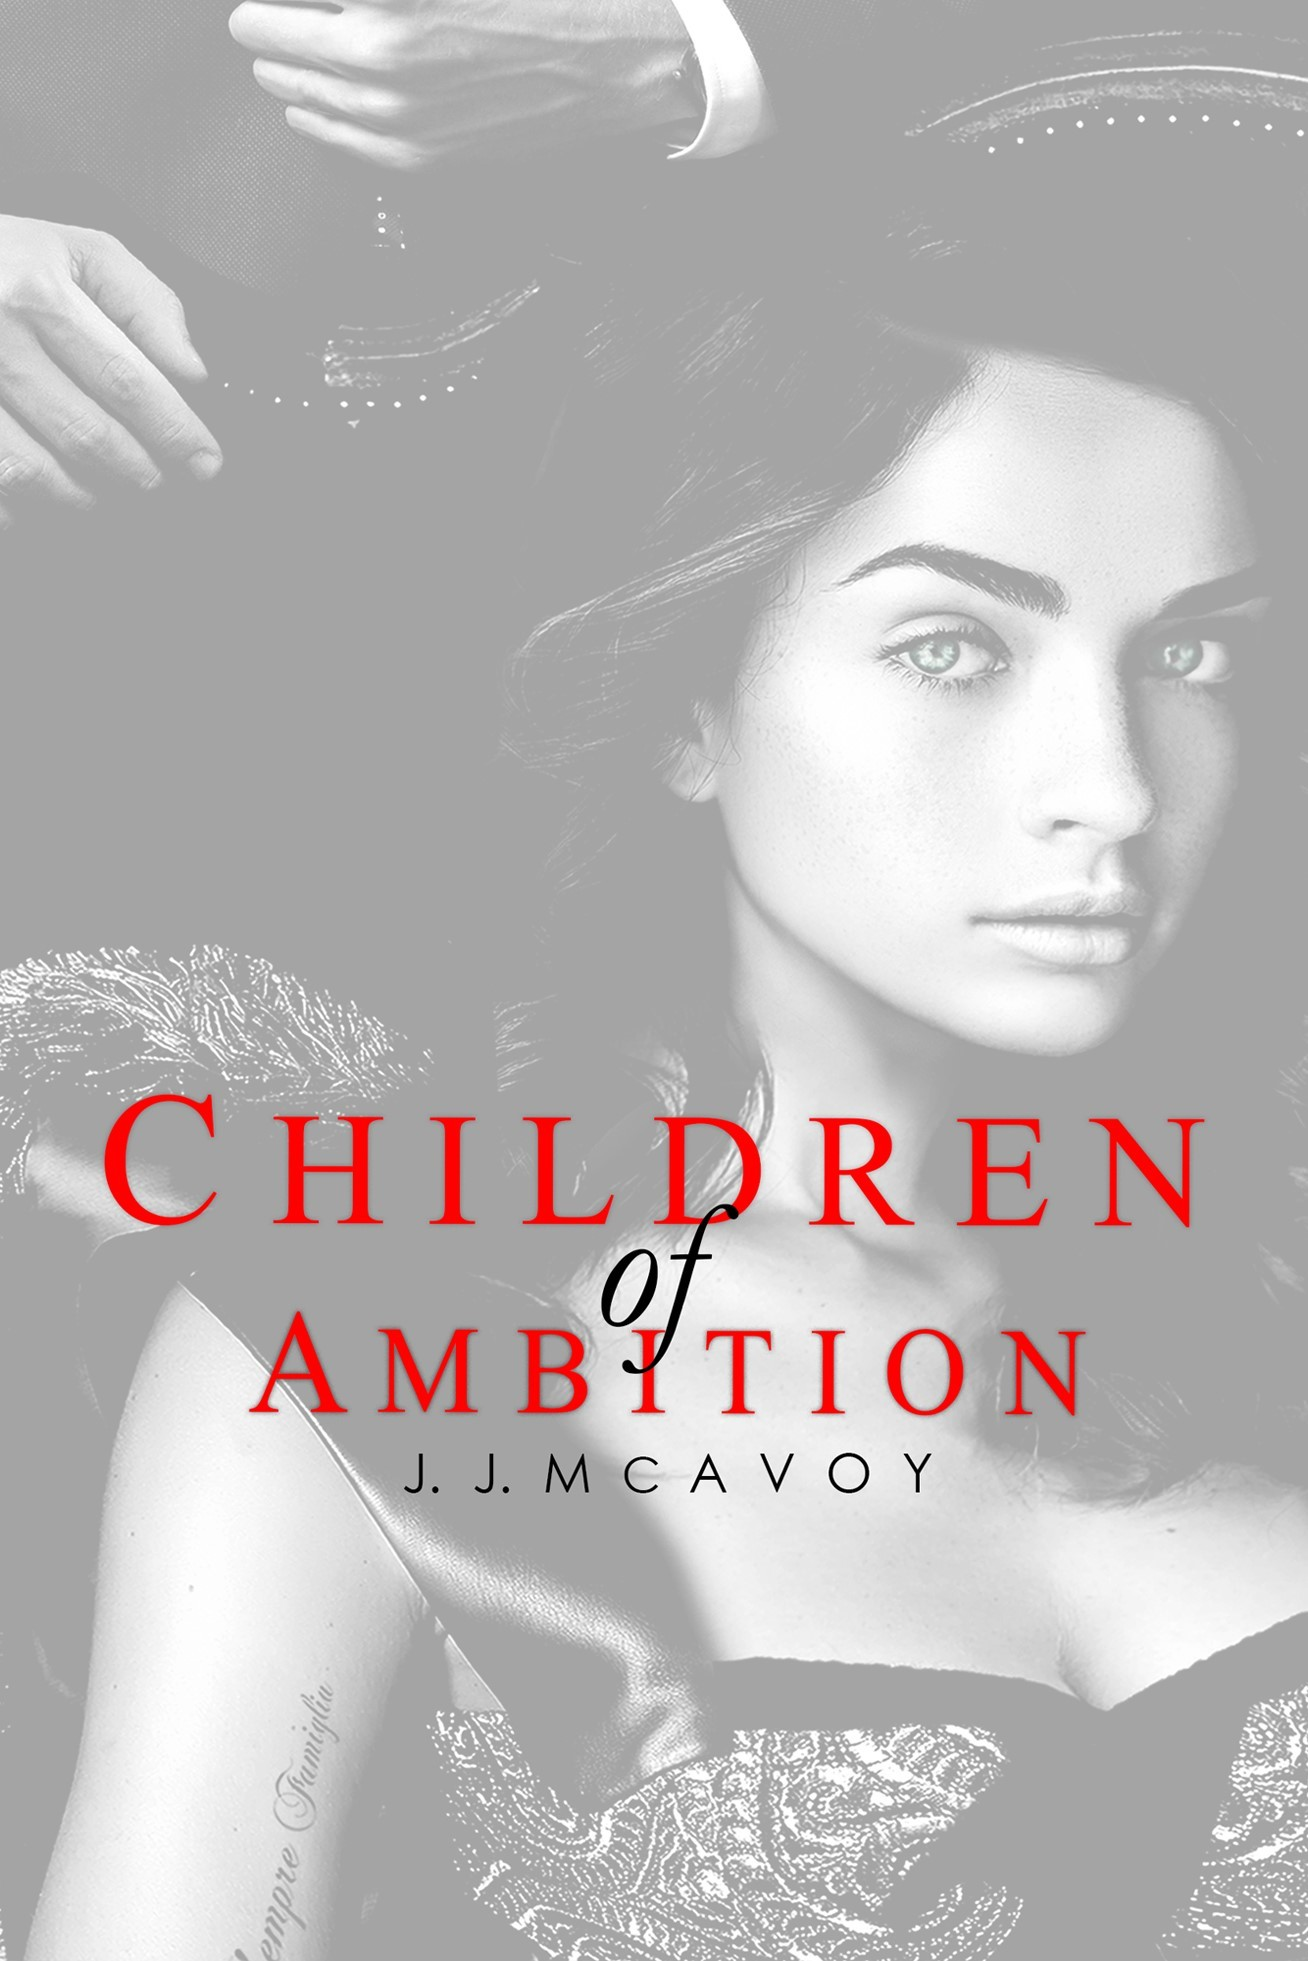 J. J. McAvoy - Children of Vice 2 - Children of Ambition